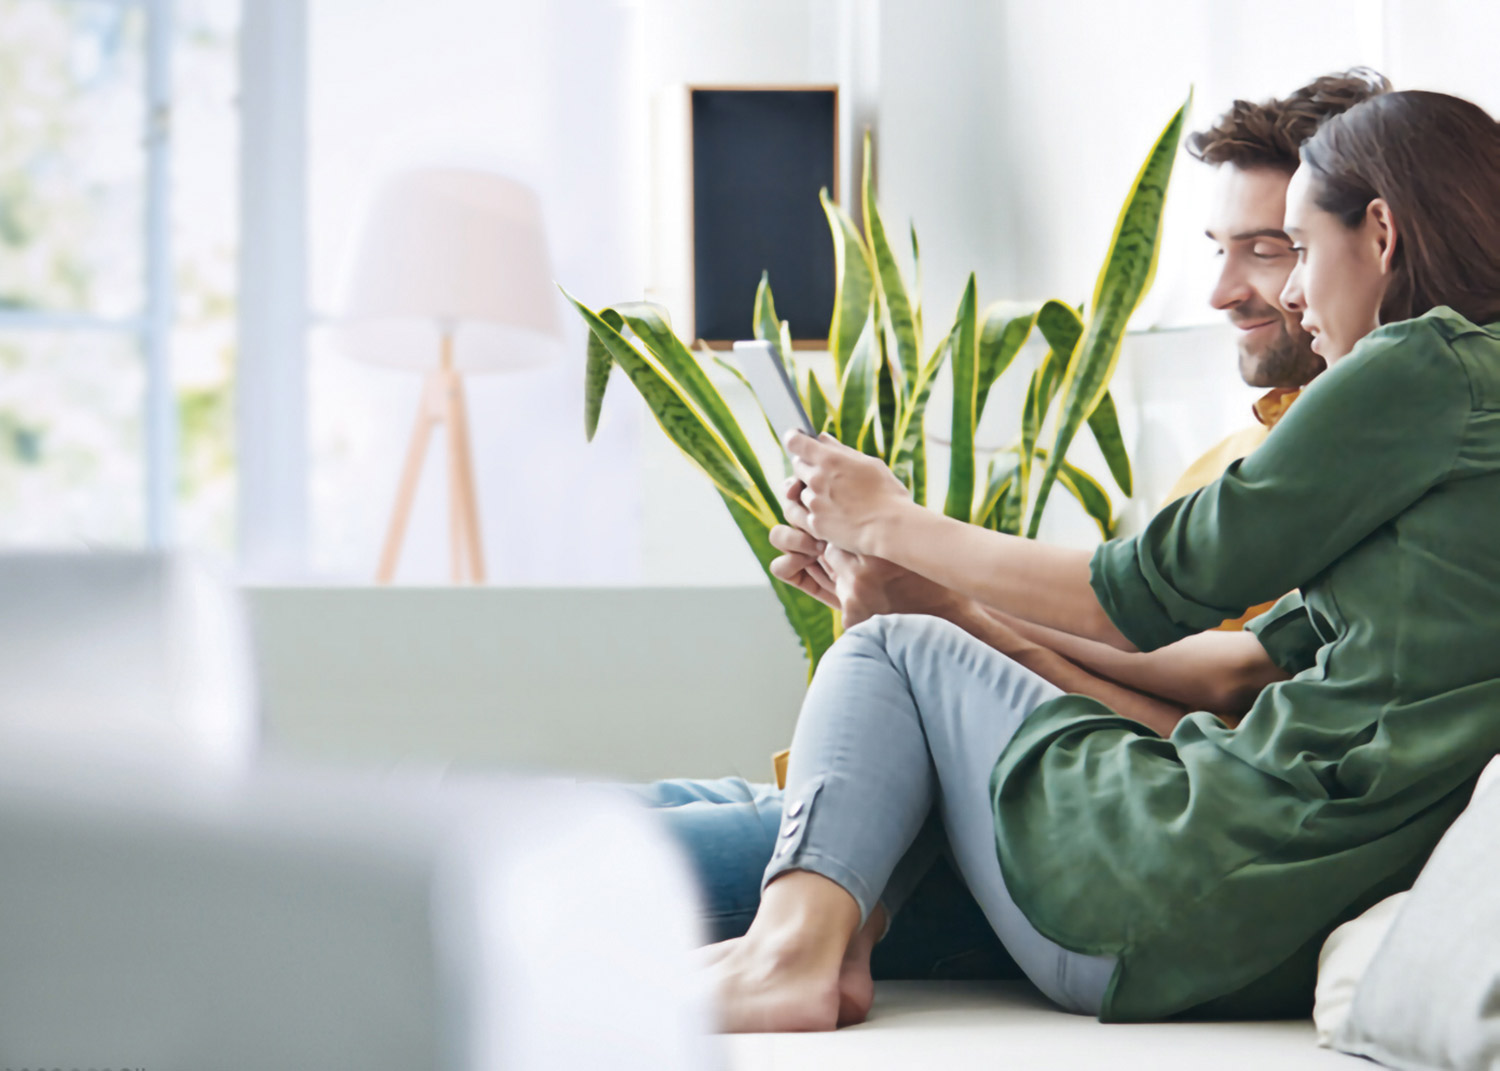 young couple on the sofa looking at a tablet screen